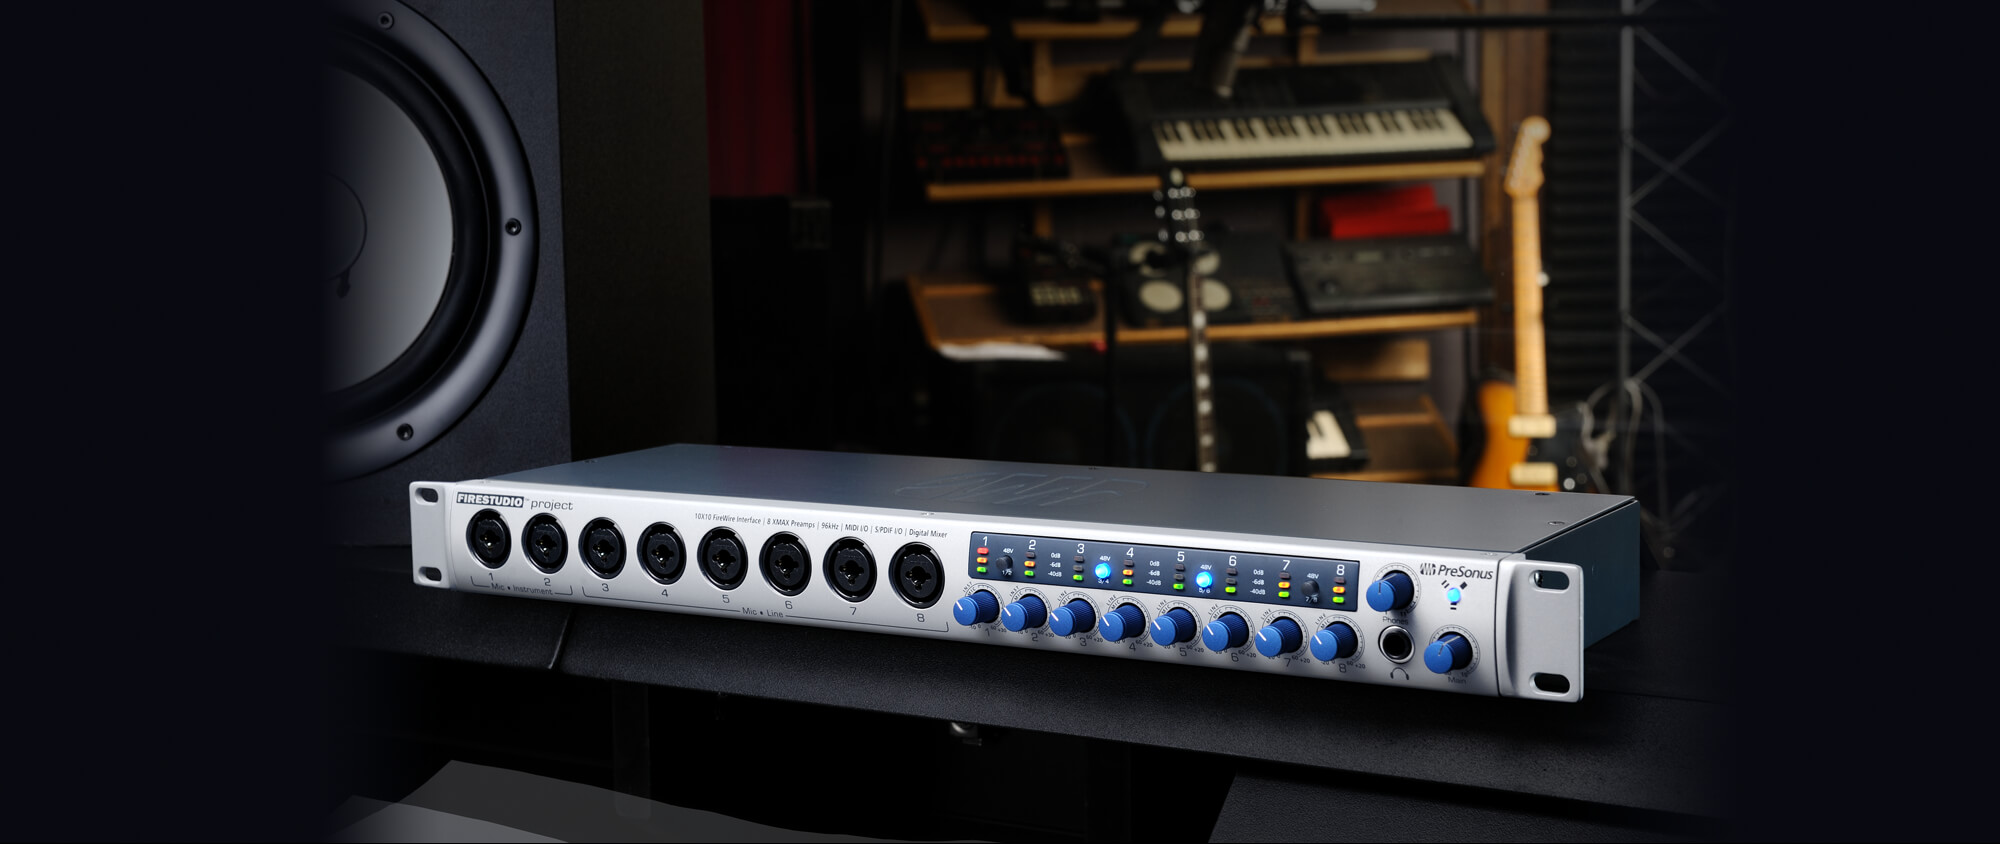 hight resolution of great sounding versatile expandable interface for project studios